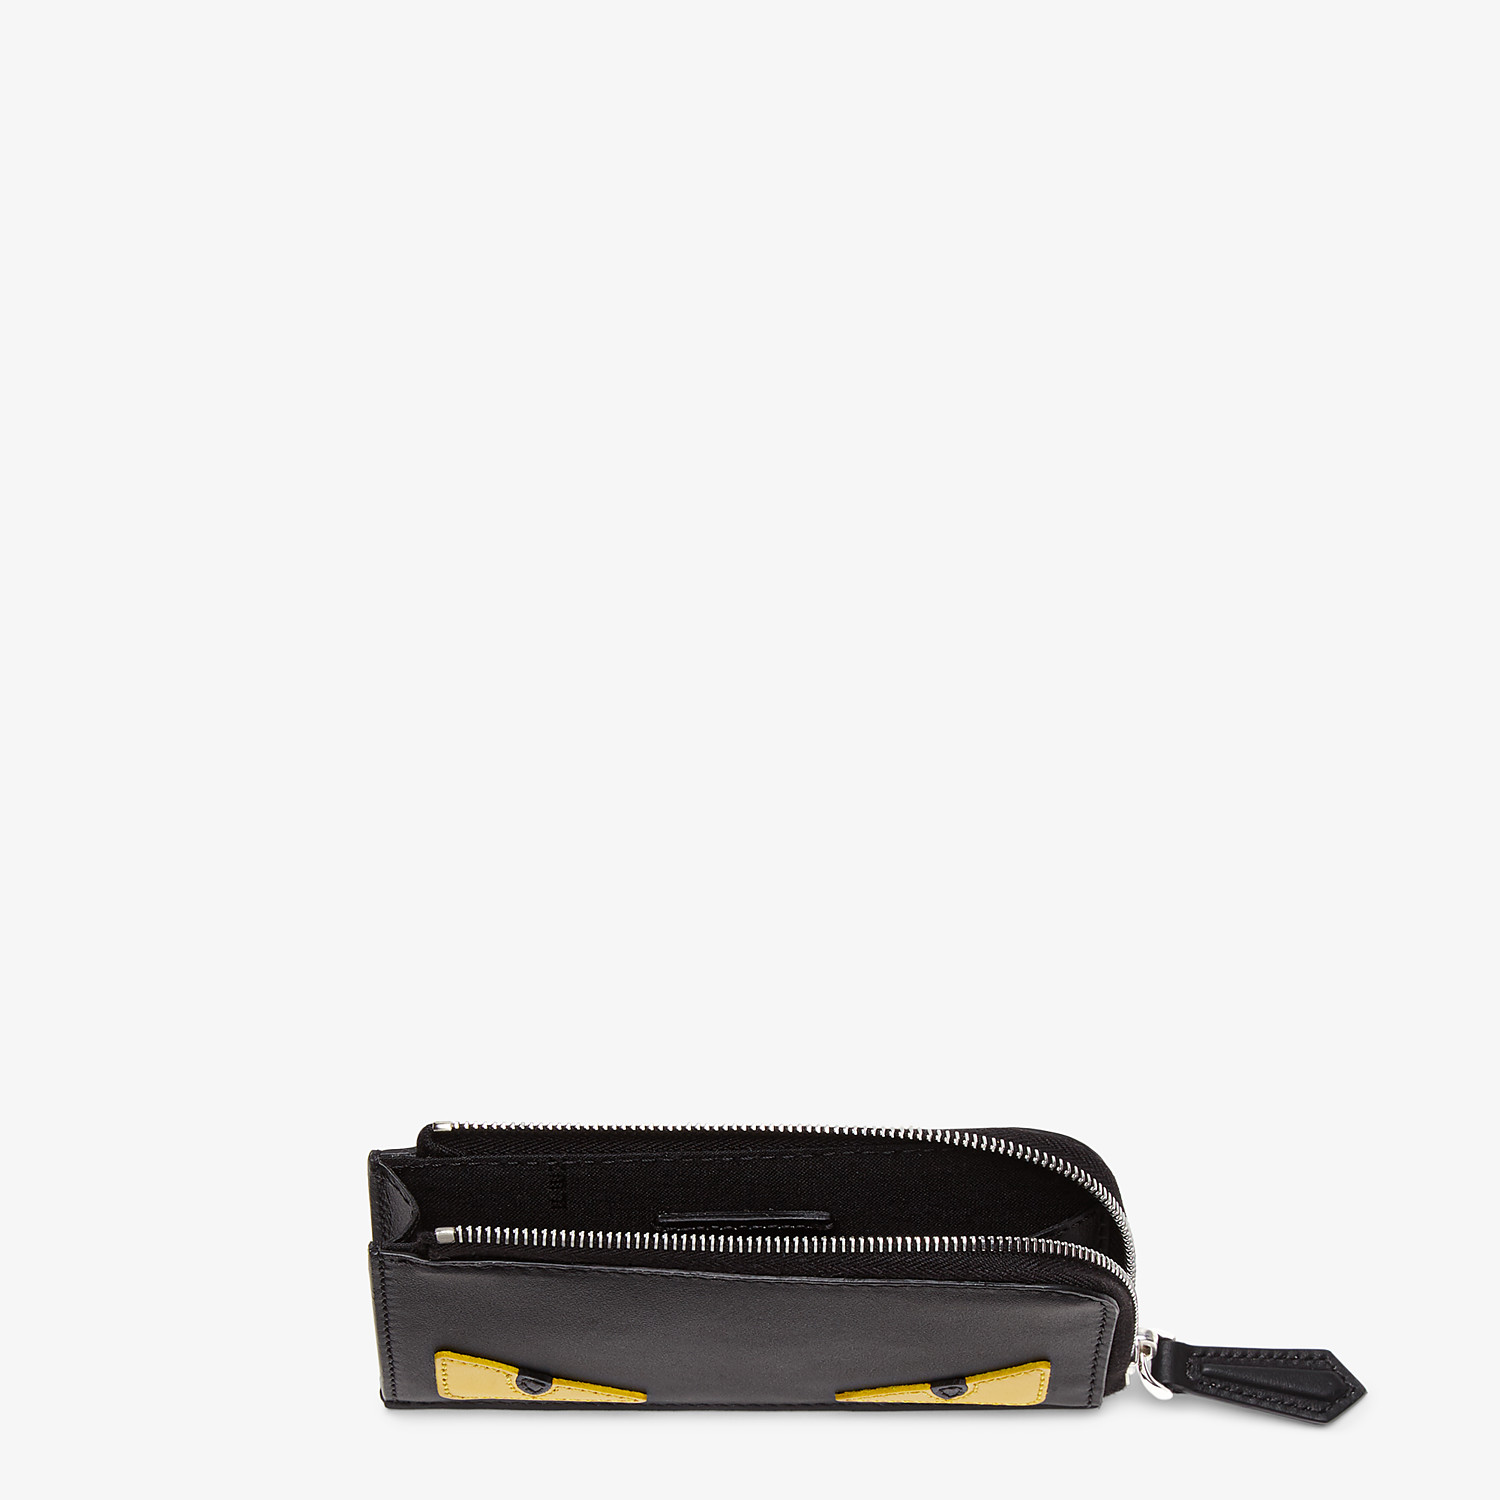 FENDI COIN PURSE - Black leather pouch - view 3 detail